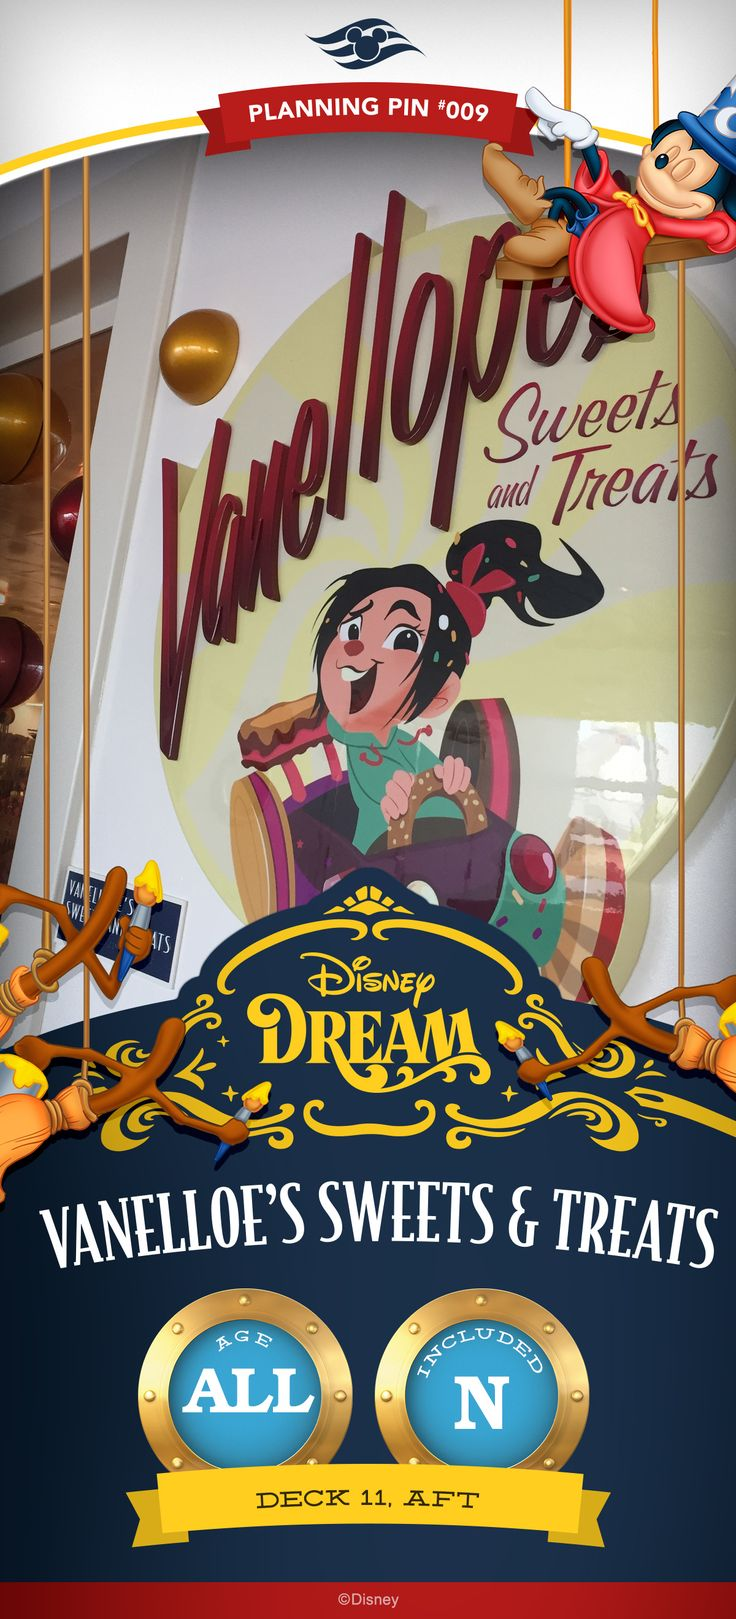 "Race on down to this decadent dessert shop inspired by the super-sweet arcade game from Disney's Wreck-It Ralph. Enjoy a ""Sugar Rush"" with hand-scooped gelato, fresh waffle cones, baked treats and candy in a wide variety of delicious flavors."